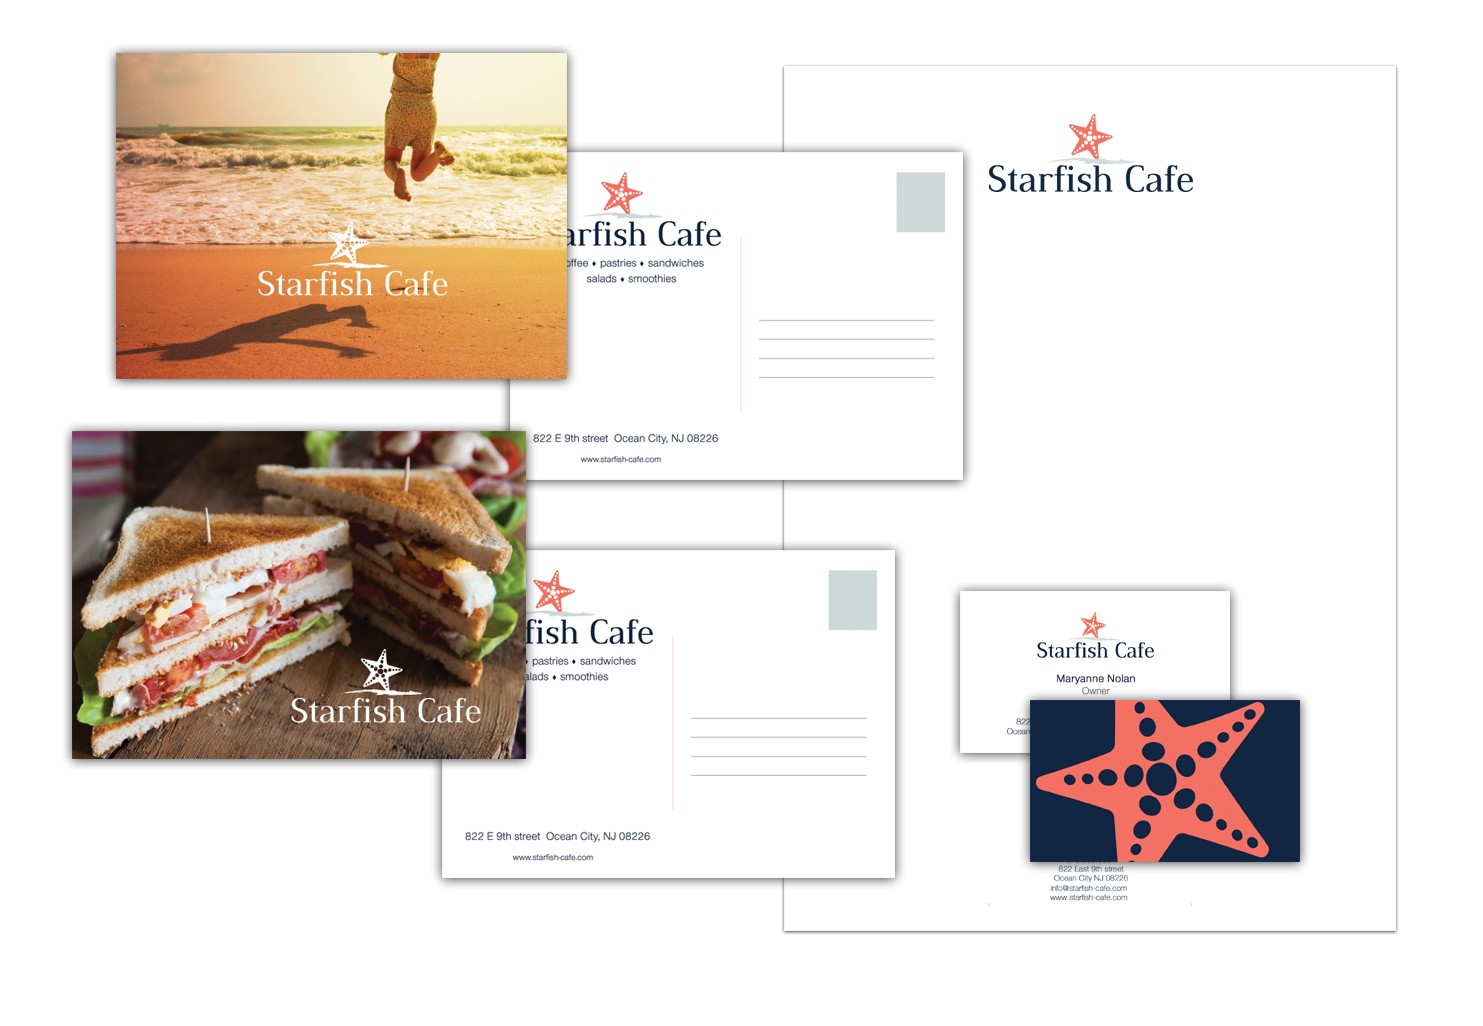 STARFISH-CAFE-BRANDING